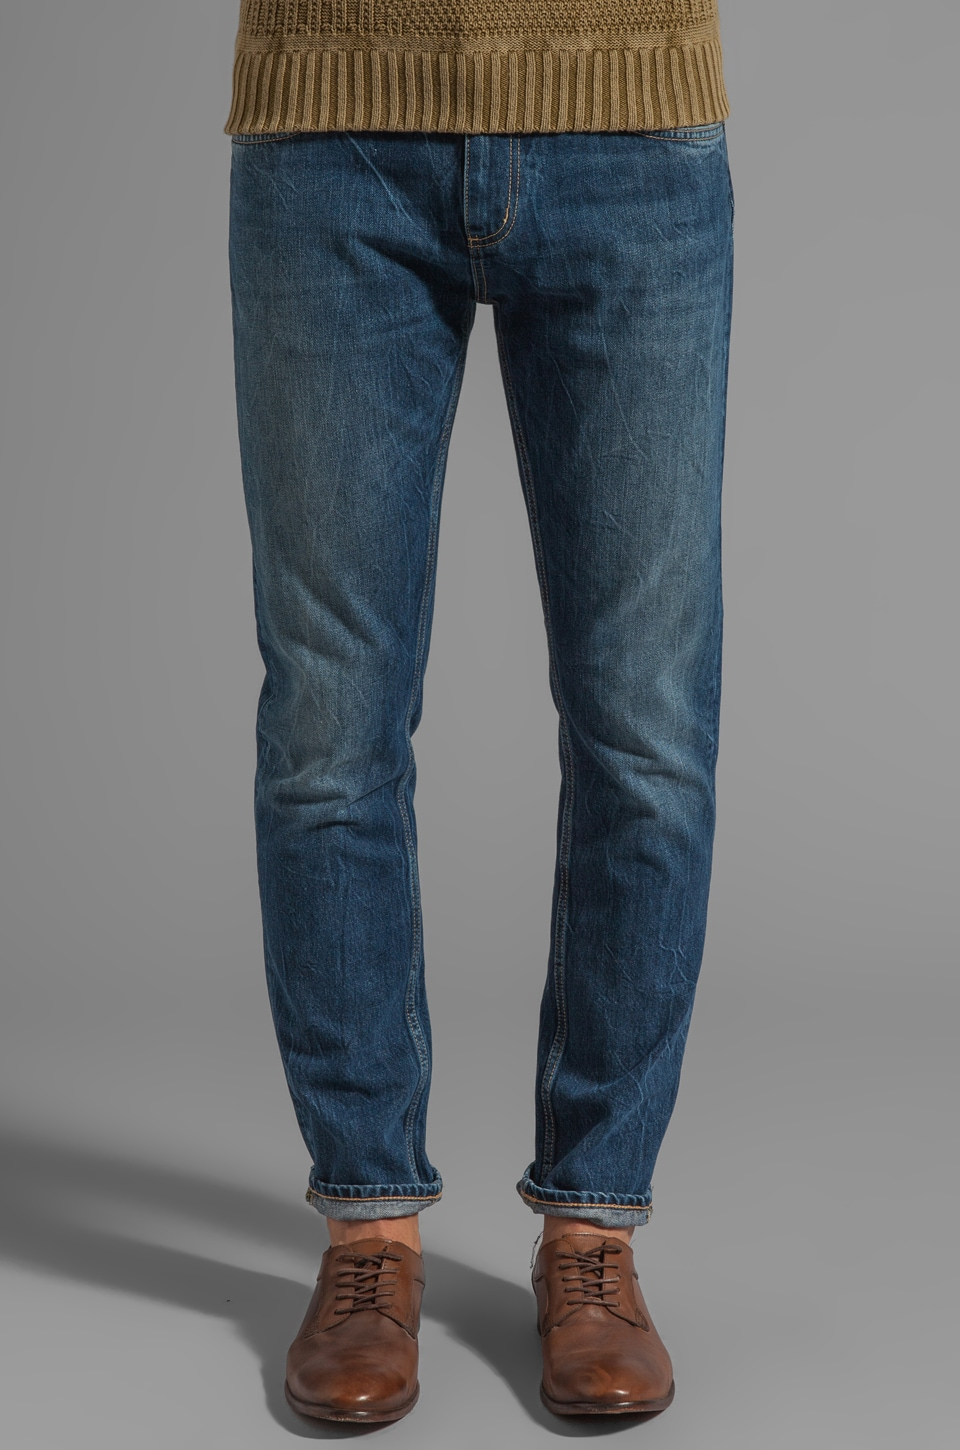 GANT Rugger Stick Boy in Medium Wash